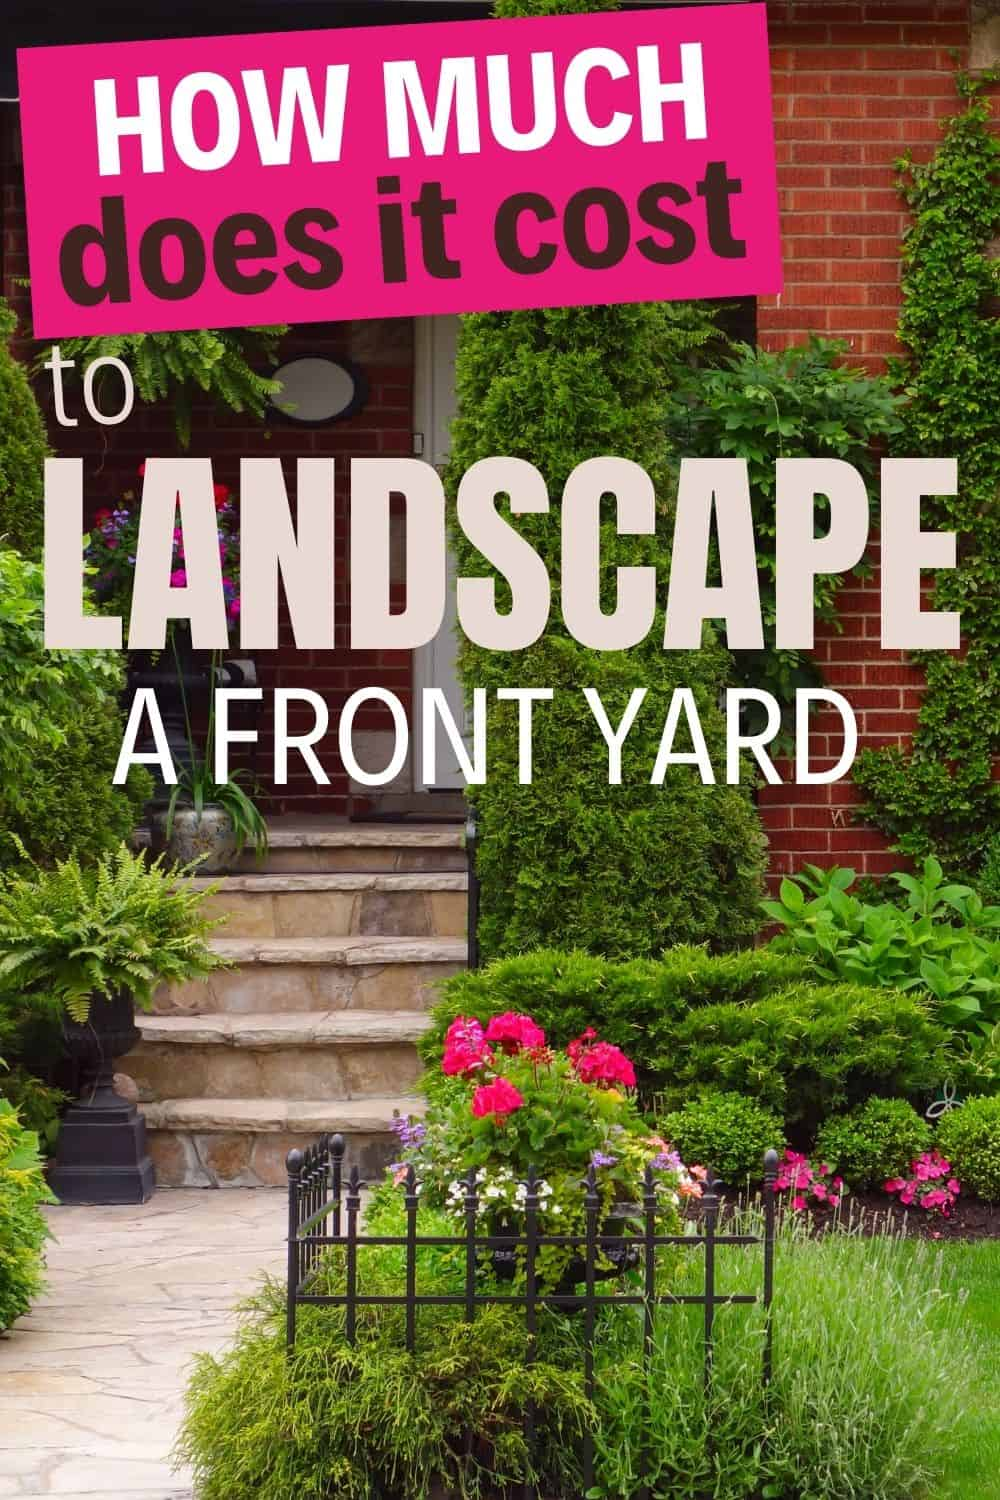 How much does it cost to landscape a front yard